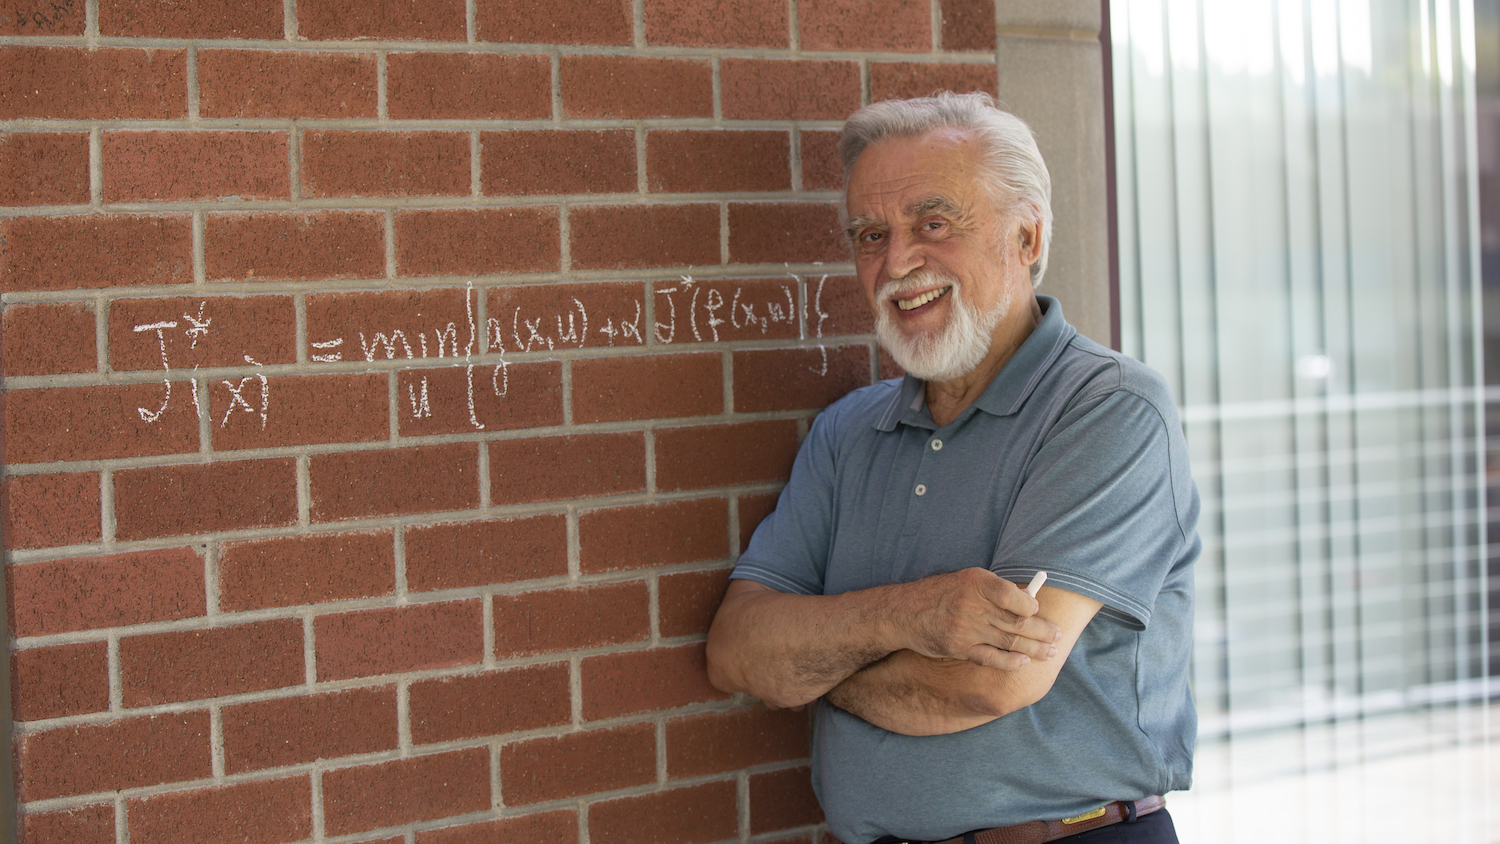 Dimitri Bertsekas stands in front of an ASU building on which he's written a mathematical equation in chalk